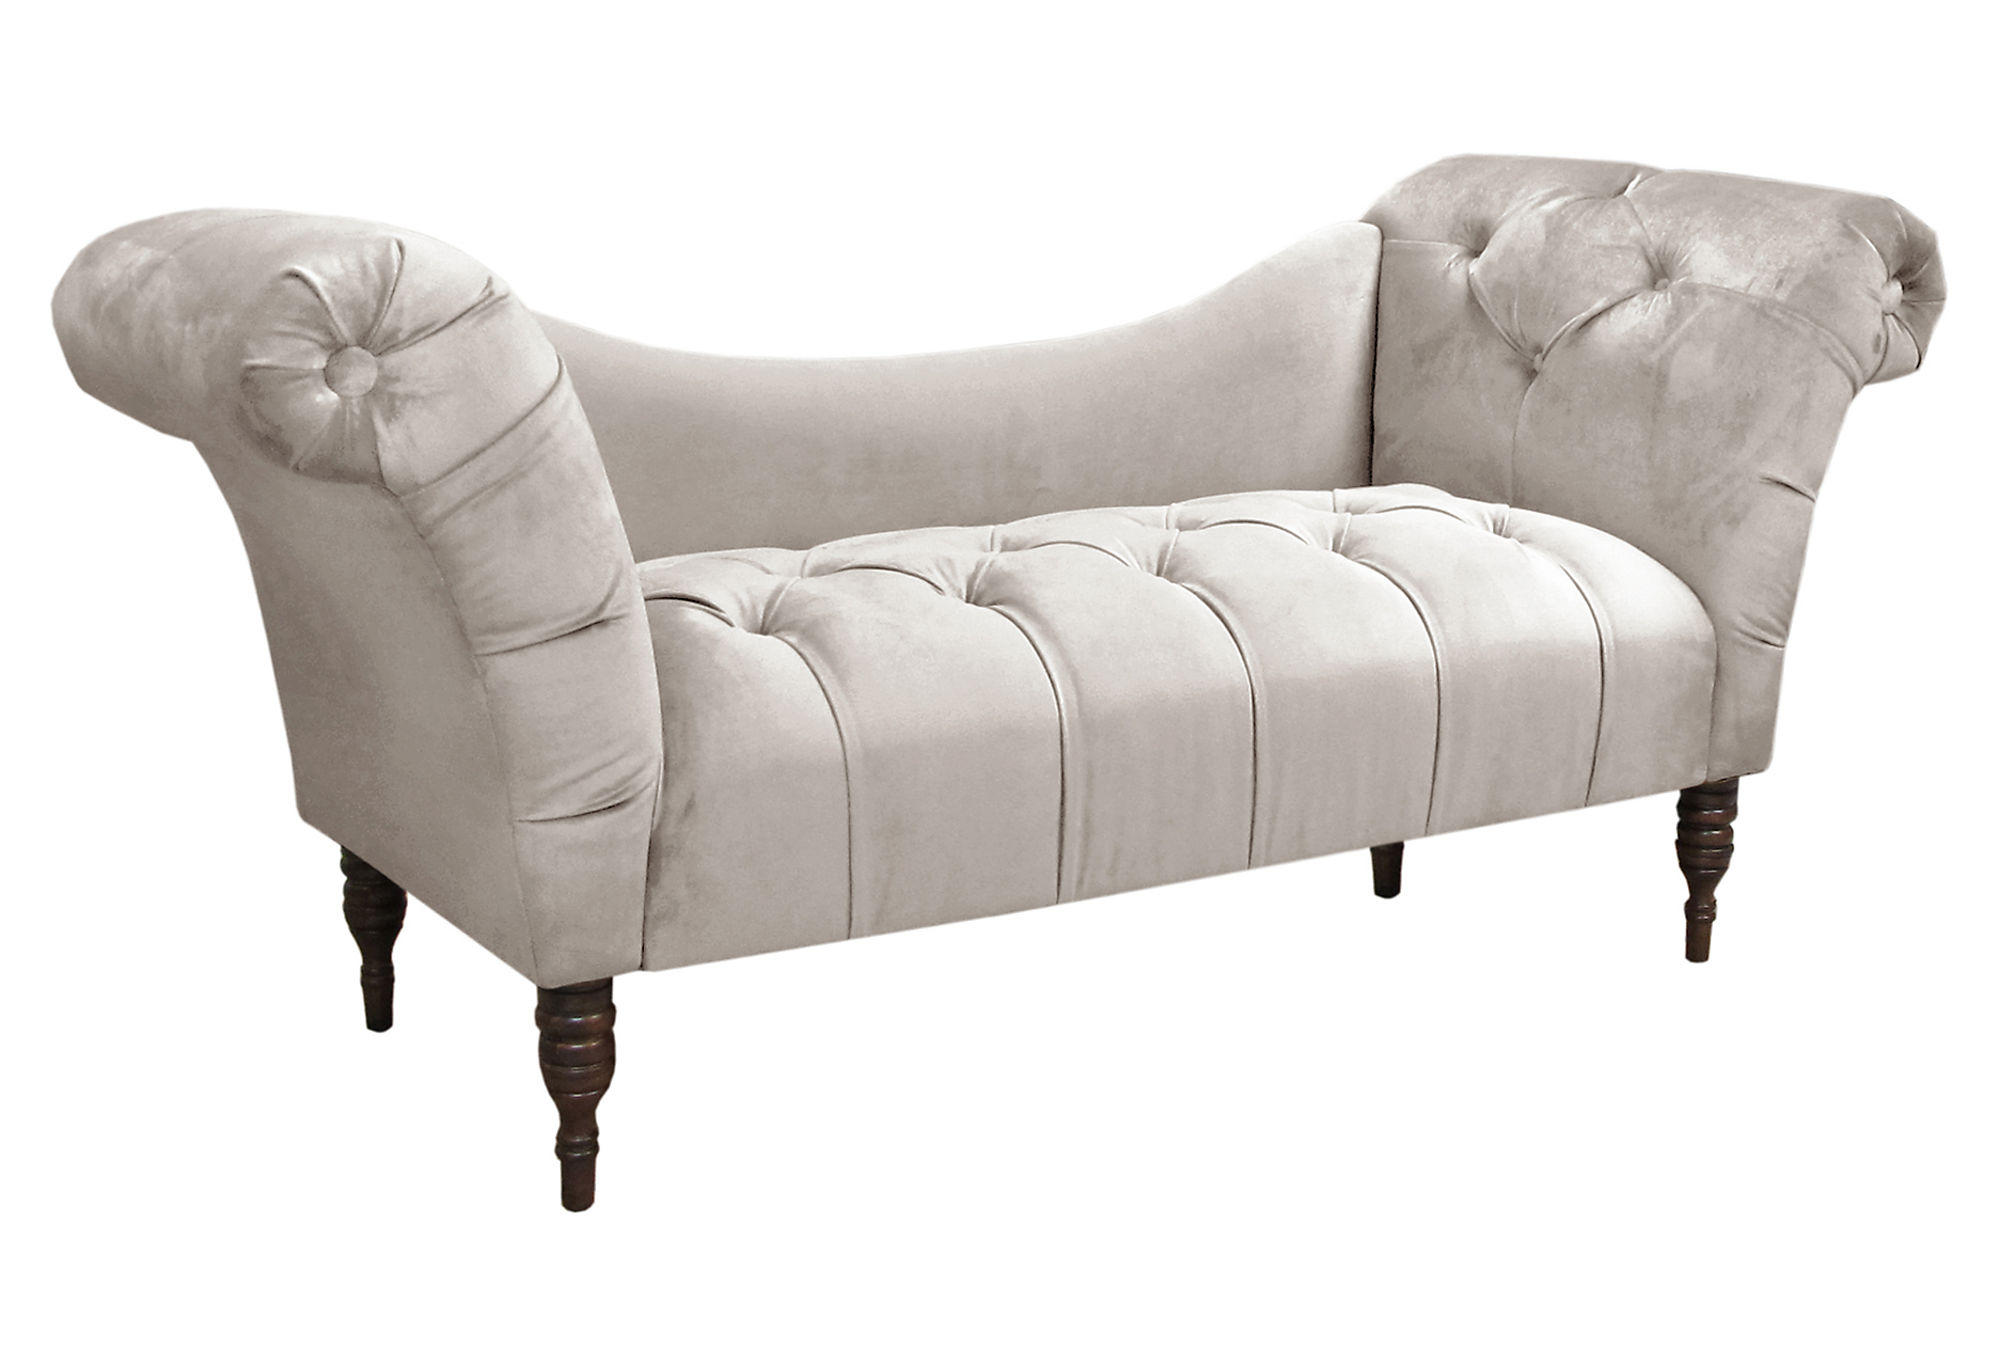 cameron 74 velvet tufted chaise gray from one kings lane